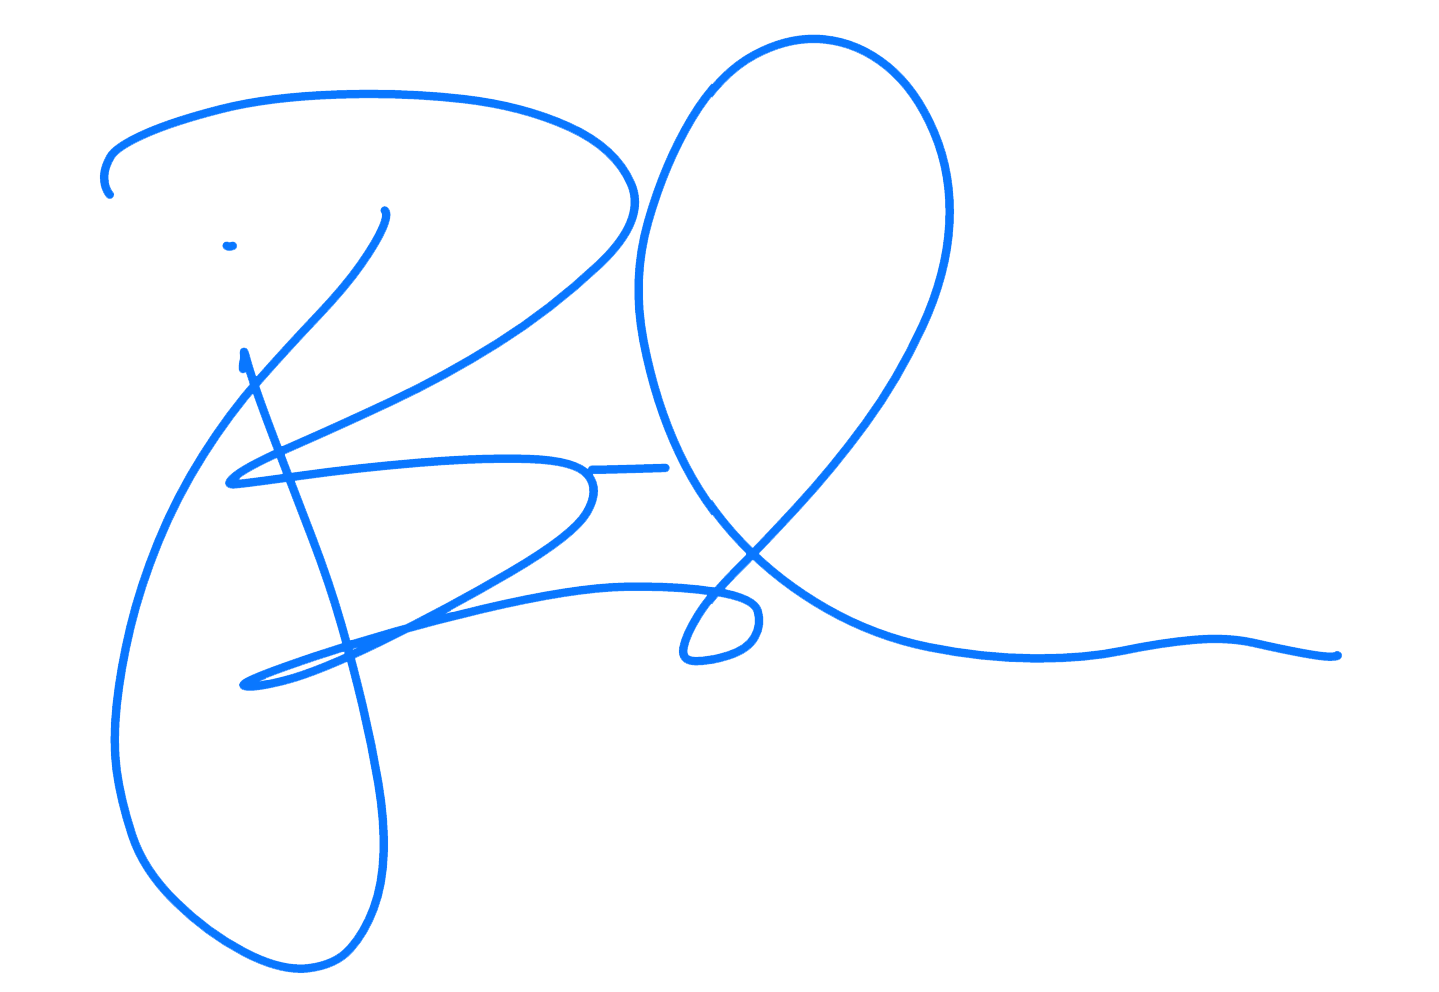 julie_signature.png